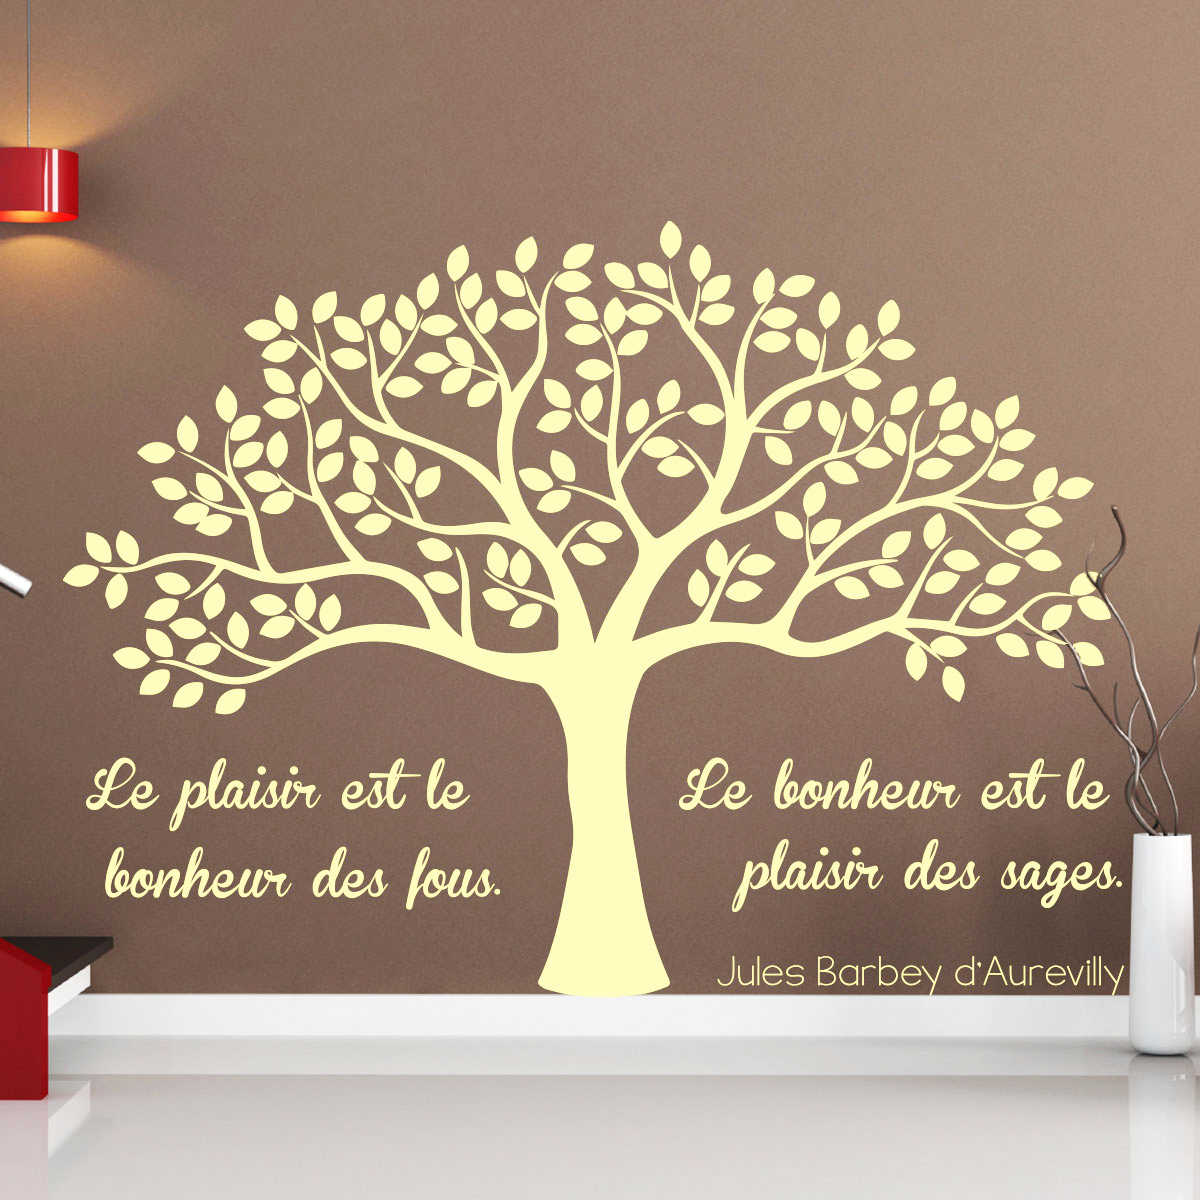 Scandinave Decoration Sticker Citation Le Plaisir Et Le Bonheur – Stickers